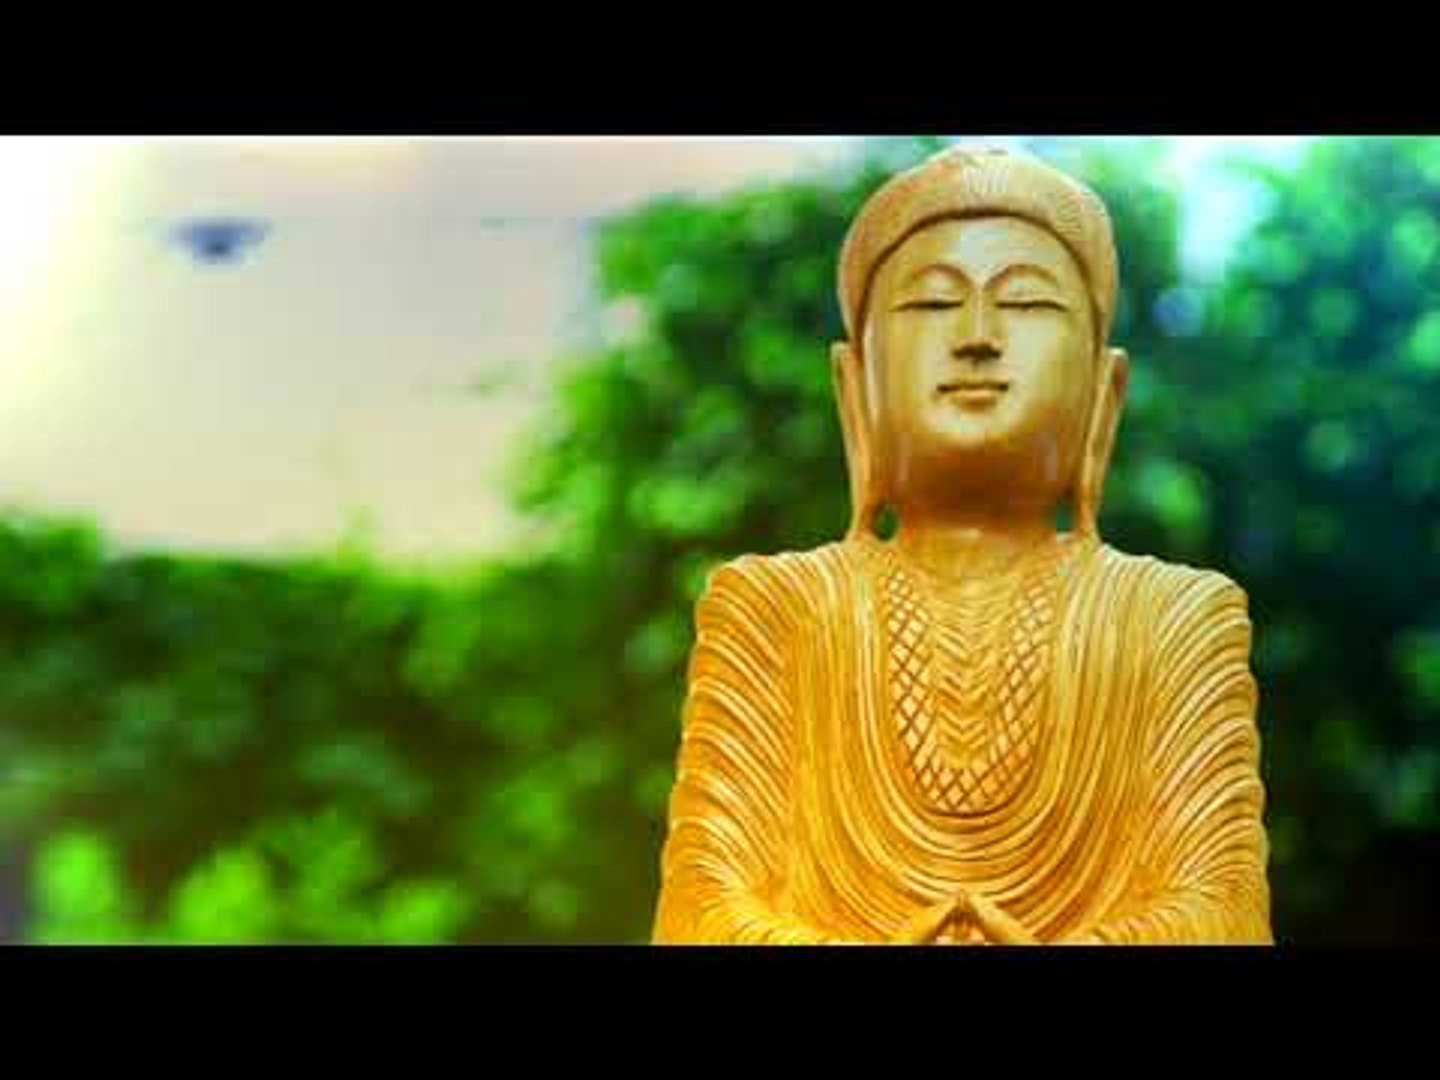 Meditational Calming Music - Chill Out Relax Music, Inner Peace, Soothing Music, Study & Focus M